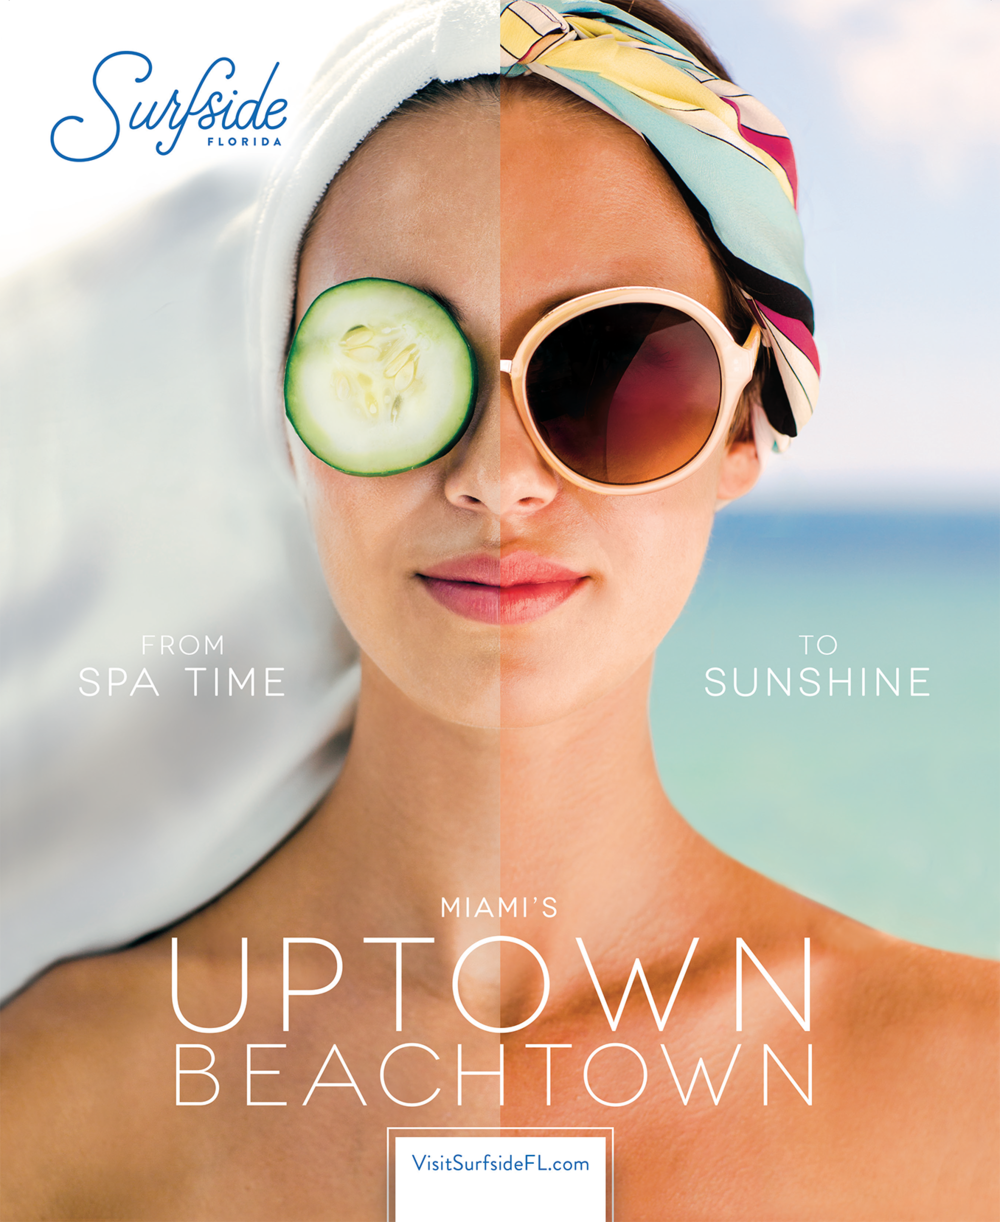 surfside_AD-SPA-eng-vacationplanner copy.png